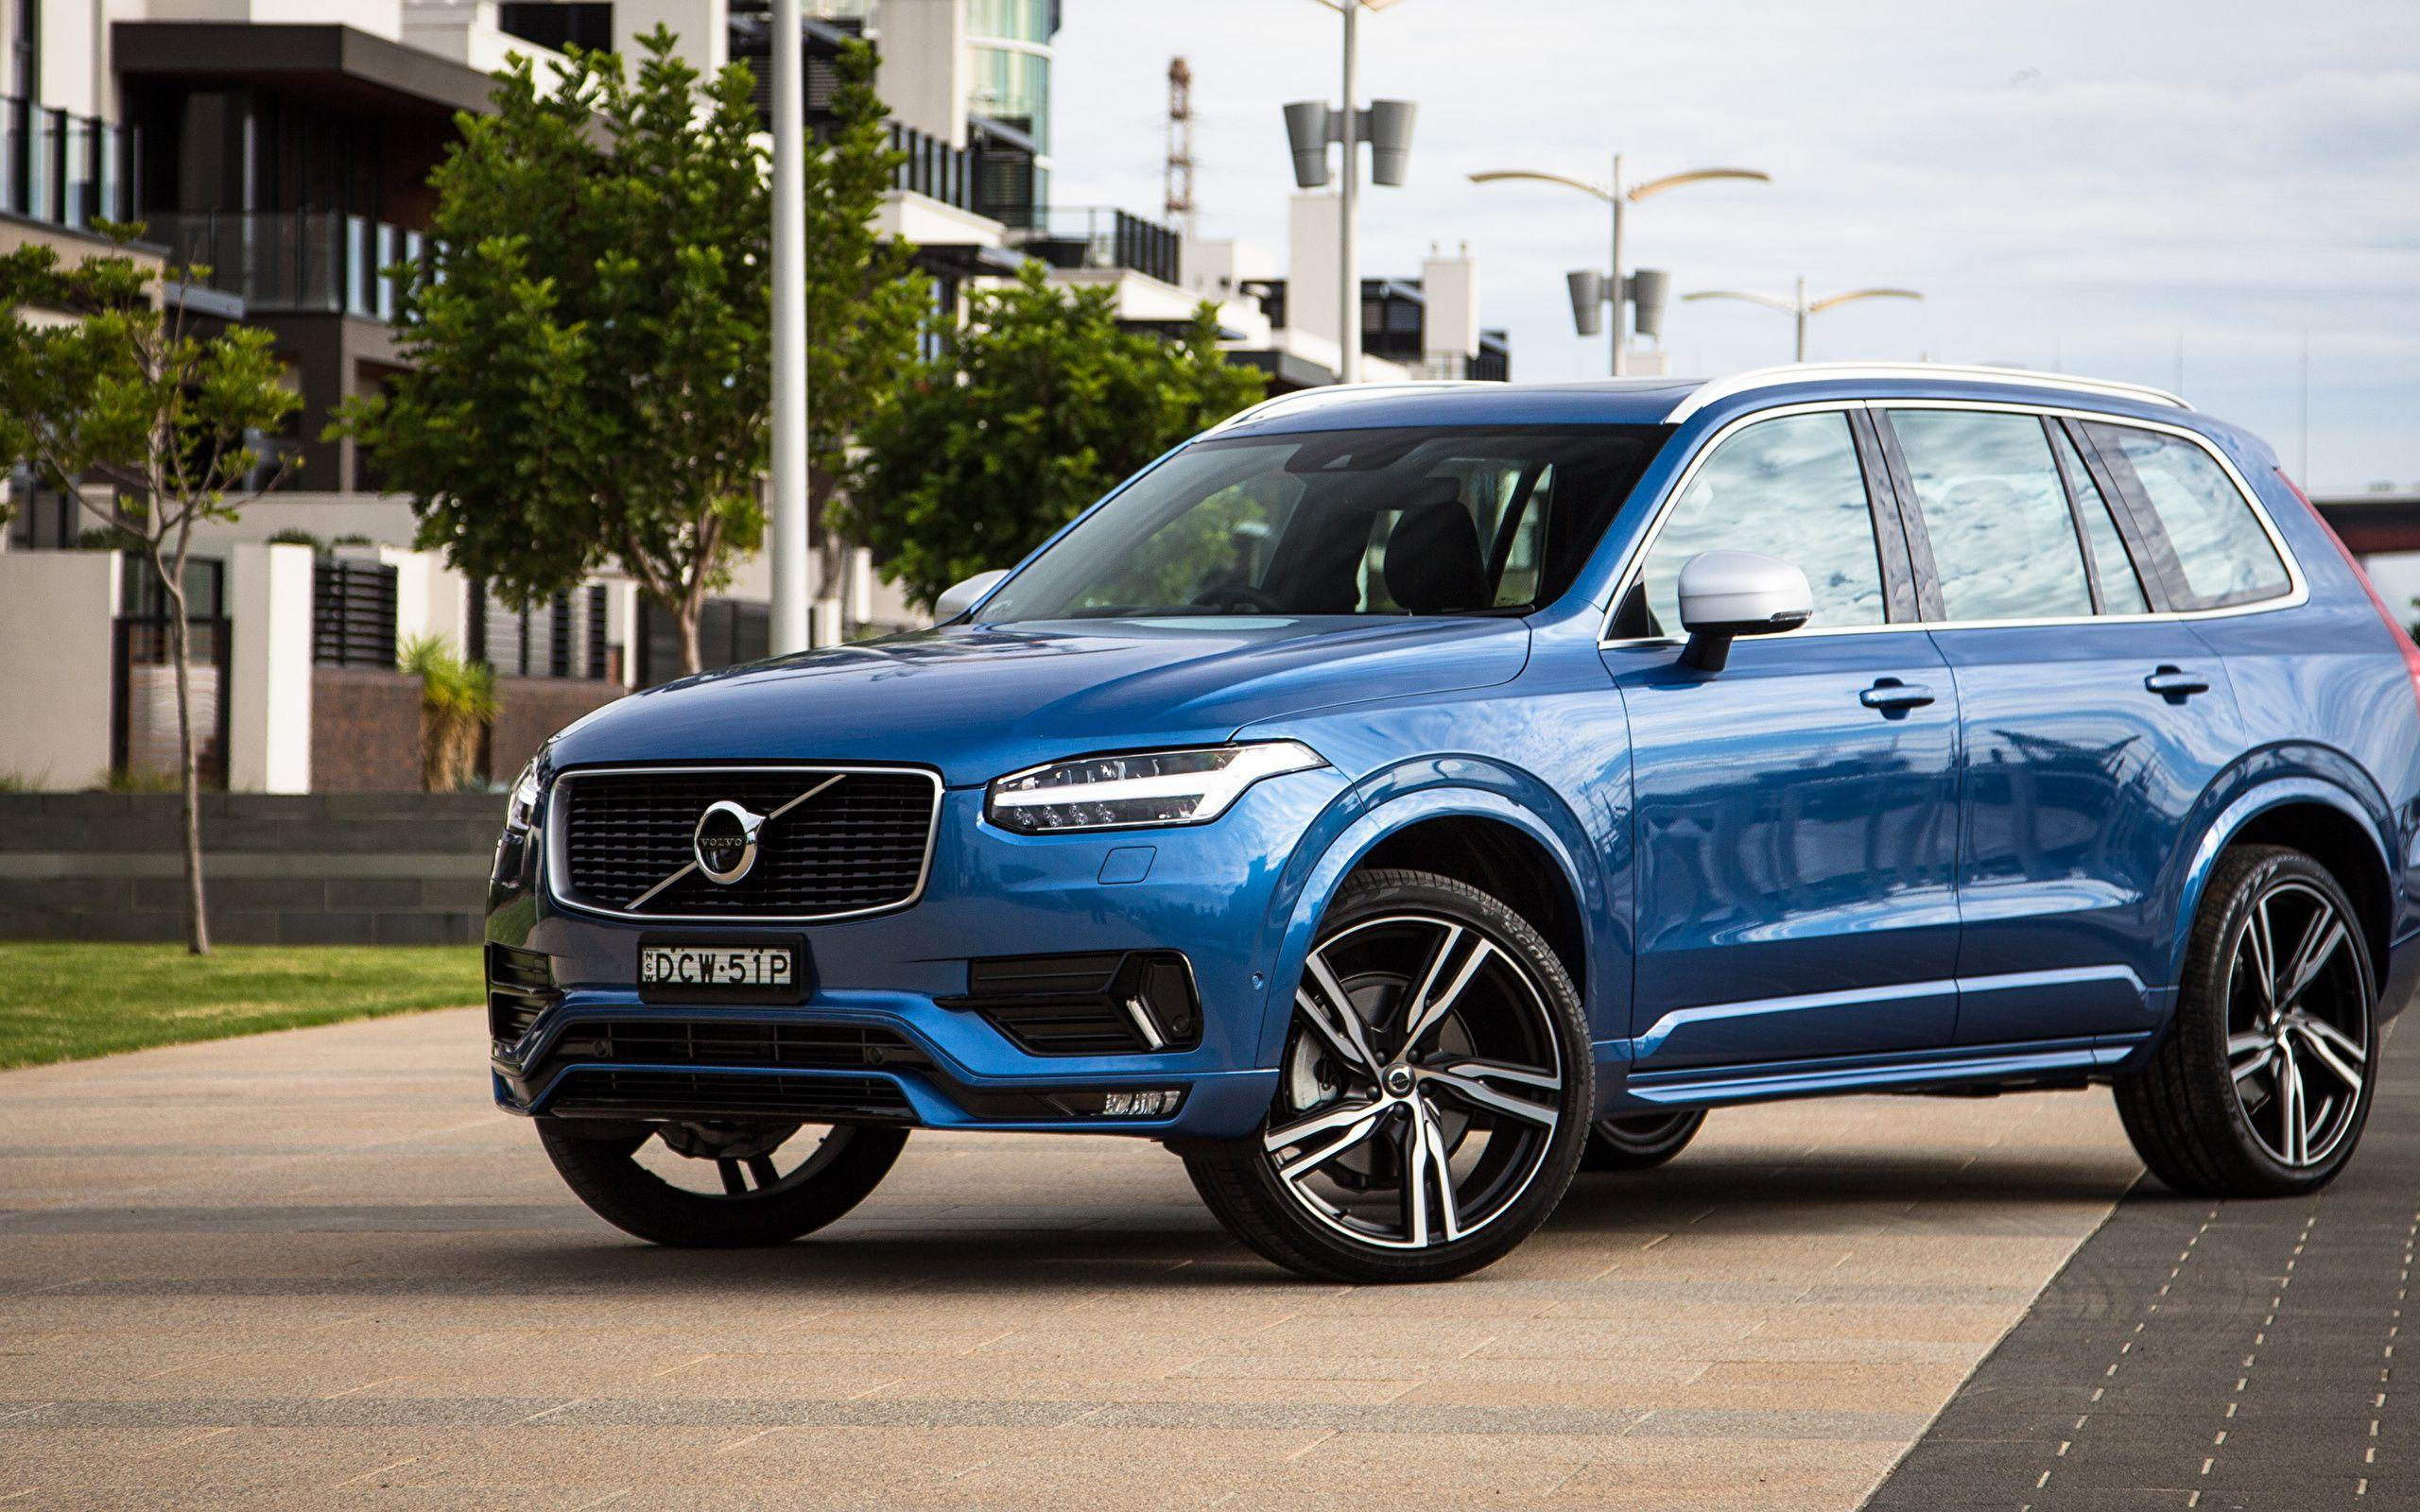 Wallpapers Volvo Crossover XC90 Blue Cars Metallic 2560x1600